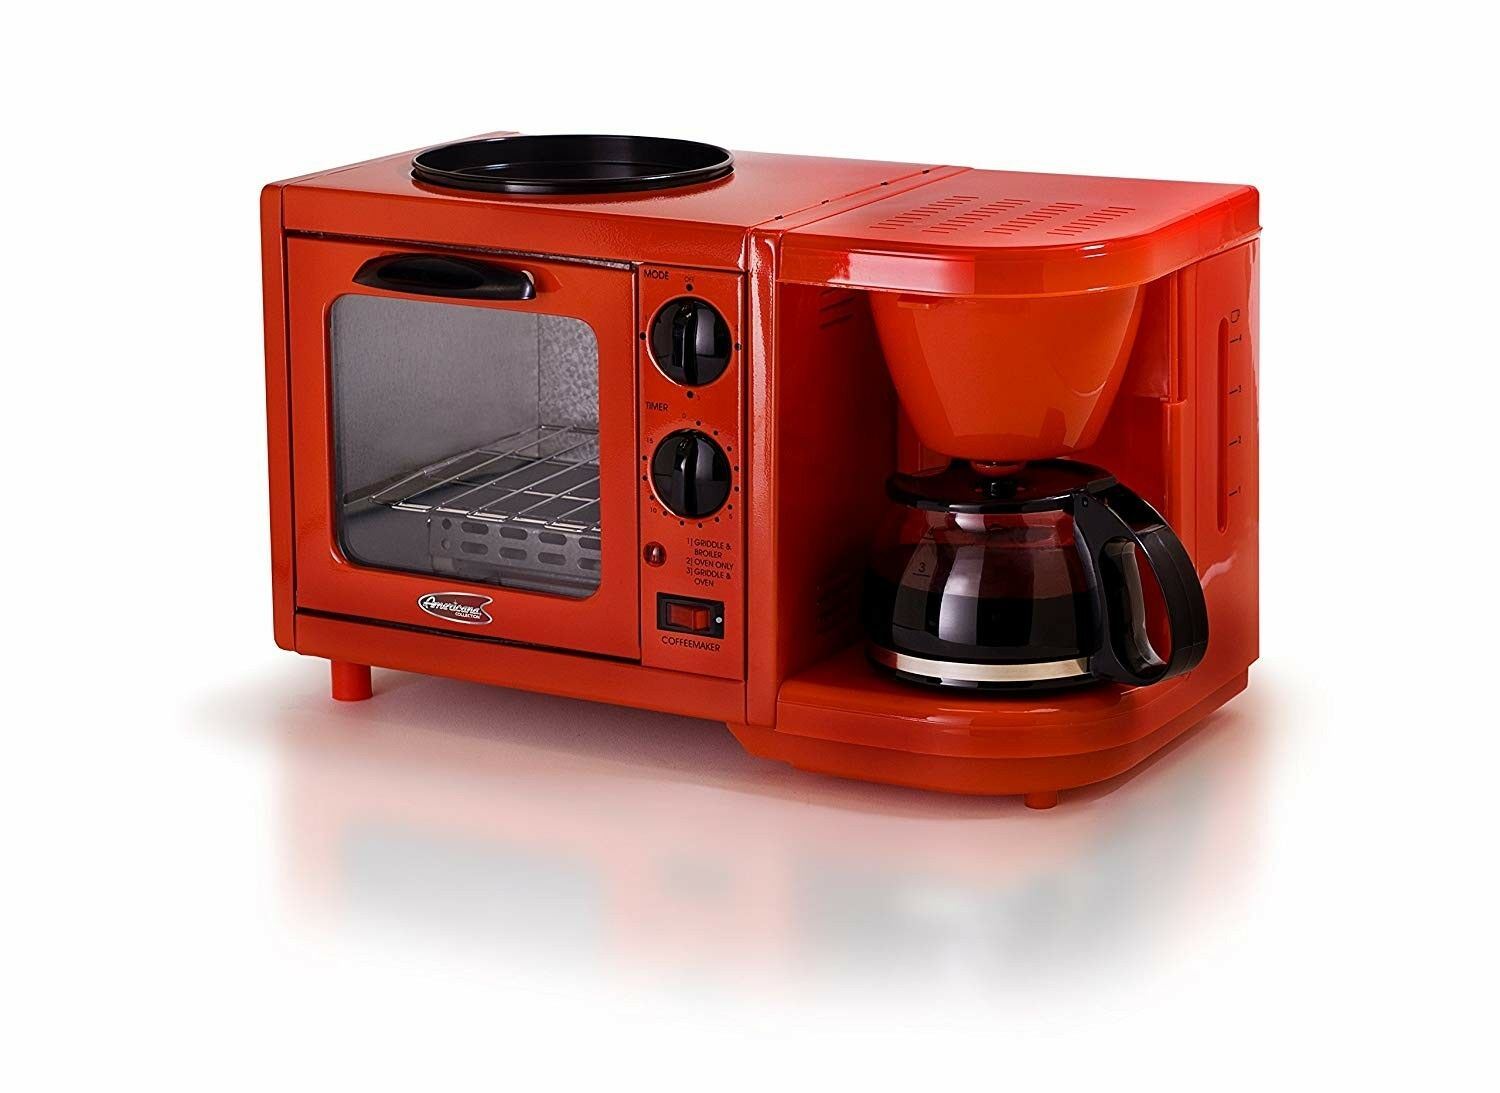 Elite Cuisine EBK-200R 3-in-1 Breakfast Center, Red